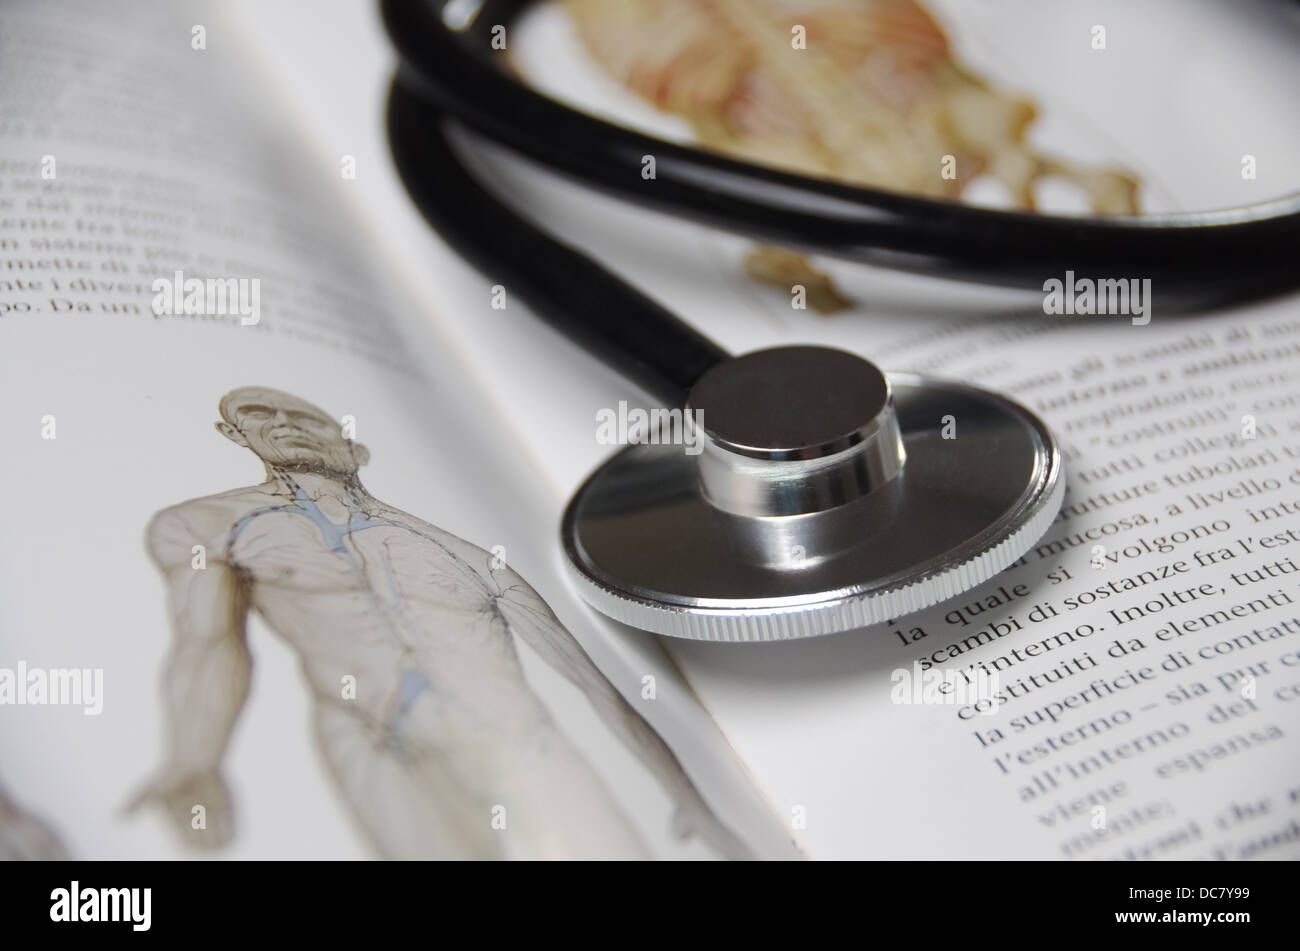 detail of Stethoscope on anatomy book Stock Photo: 59182069 - Alamy